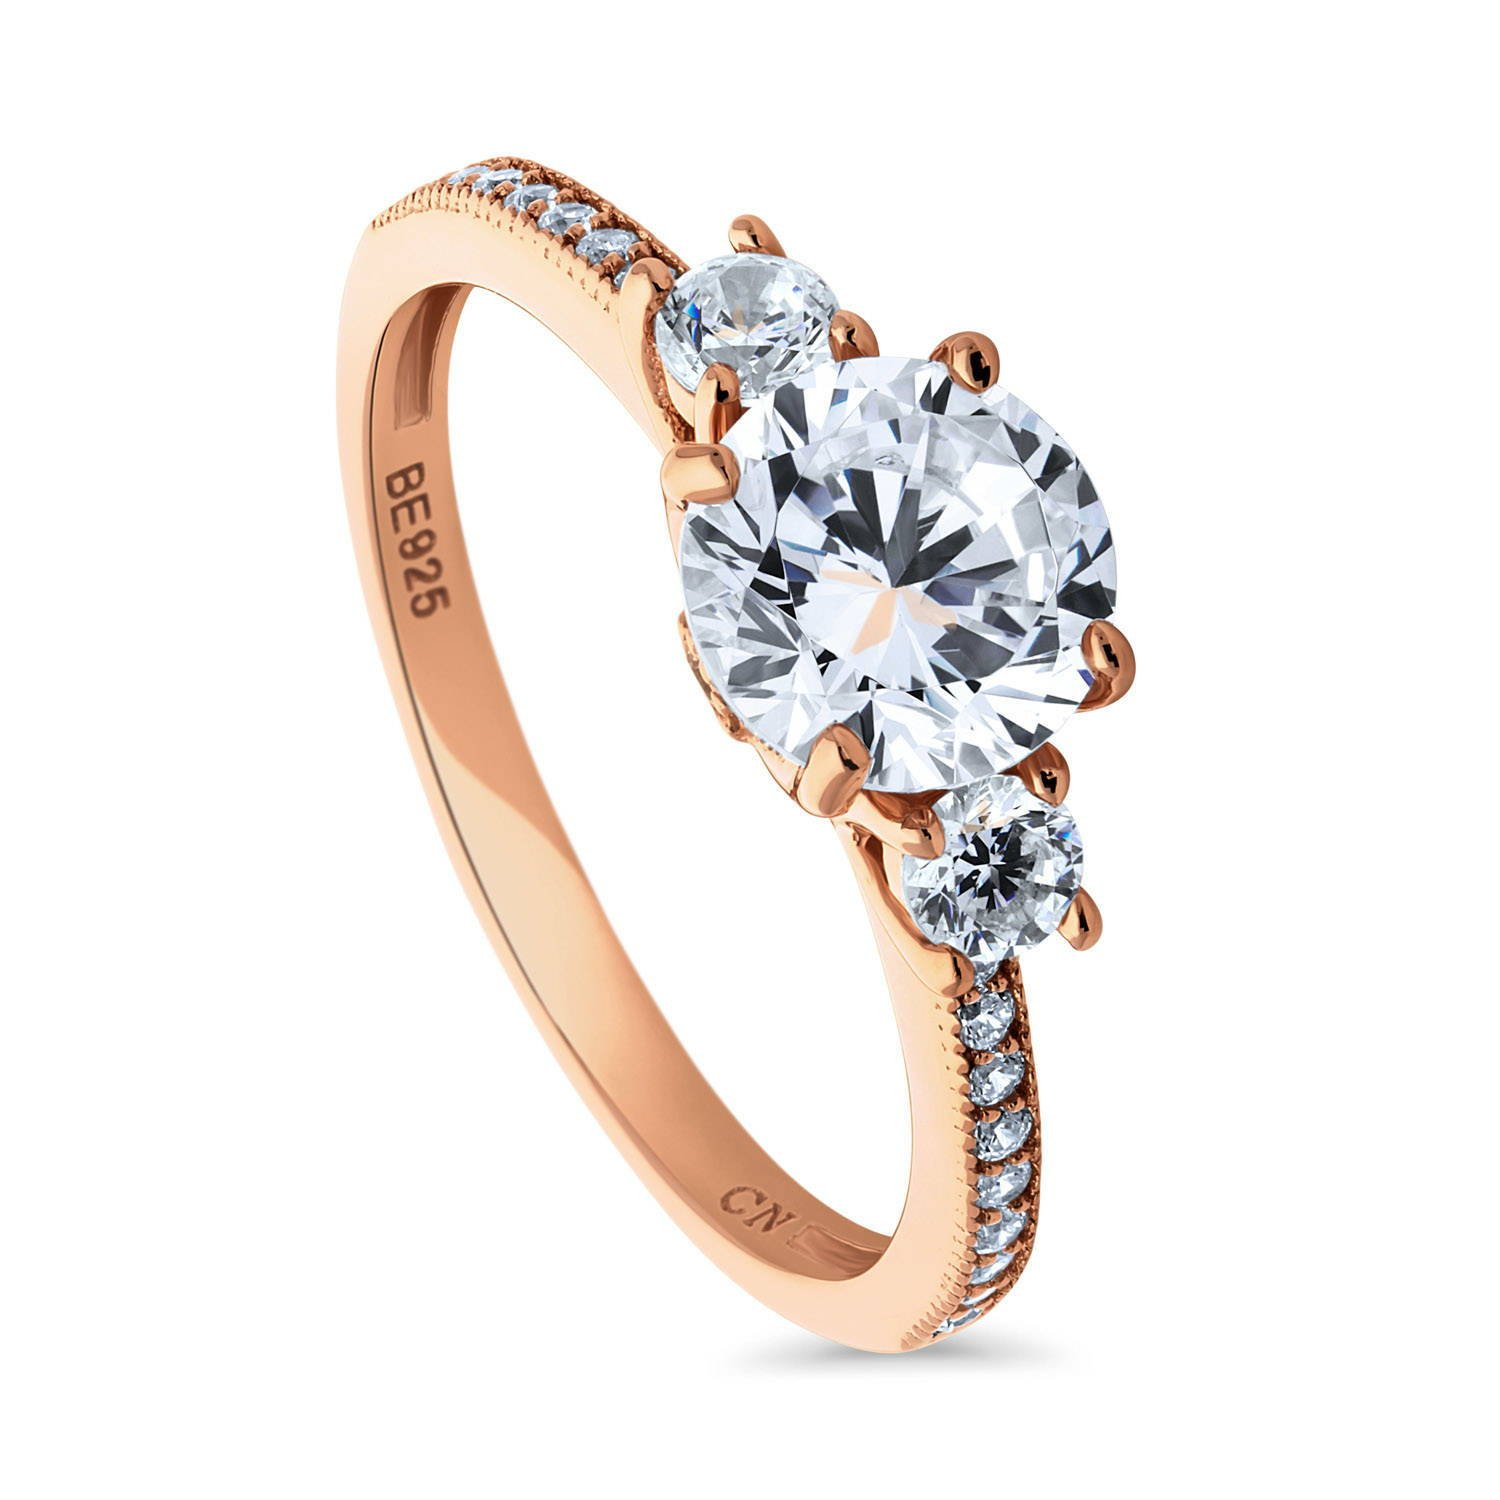 BERRICLE Rose Gold Plated Sterling Silver Cubic Zirconia CZ 3-Stone Promise Engagement Ring Size 7.5